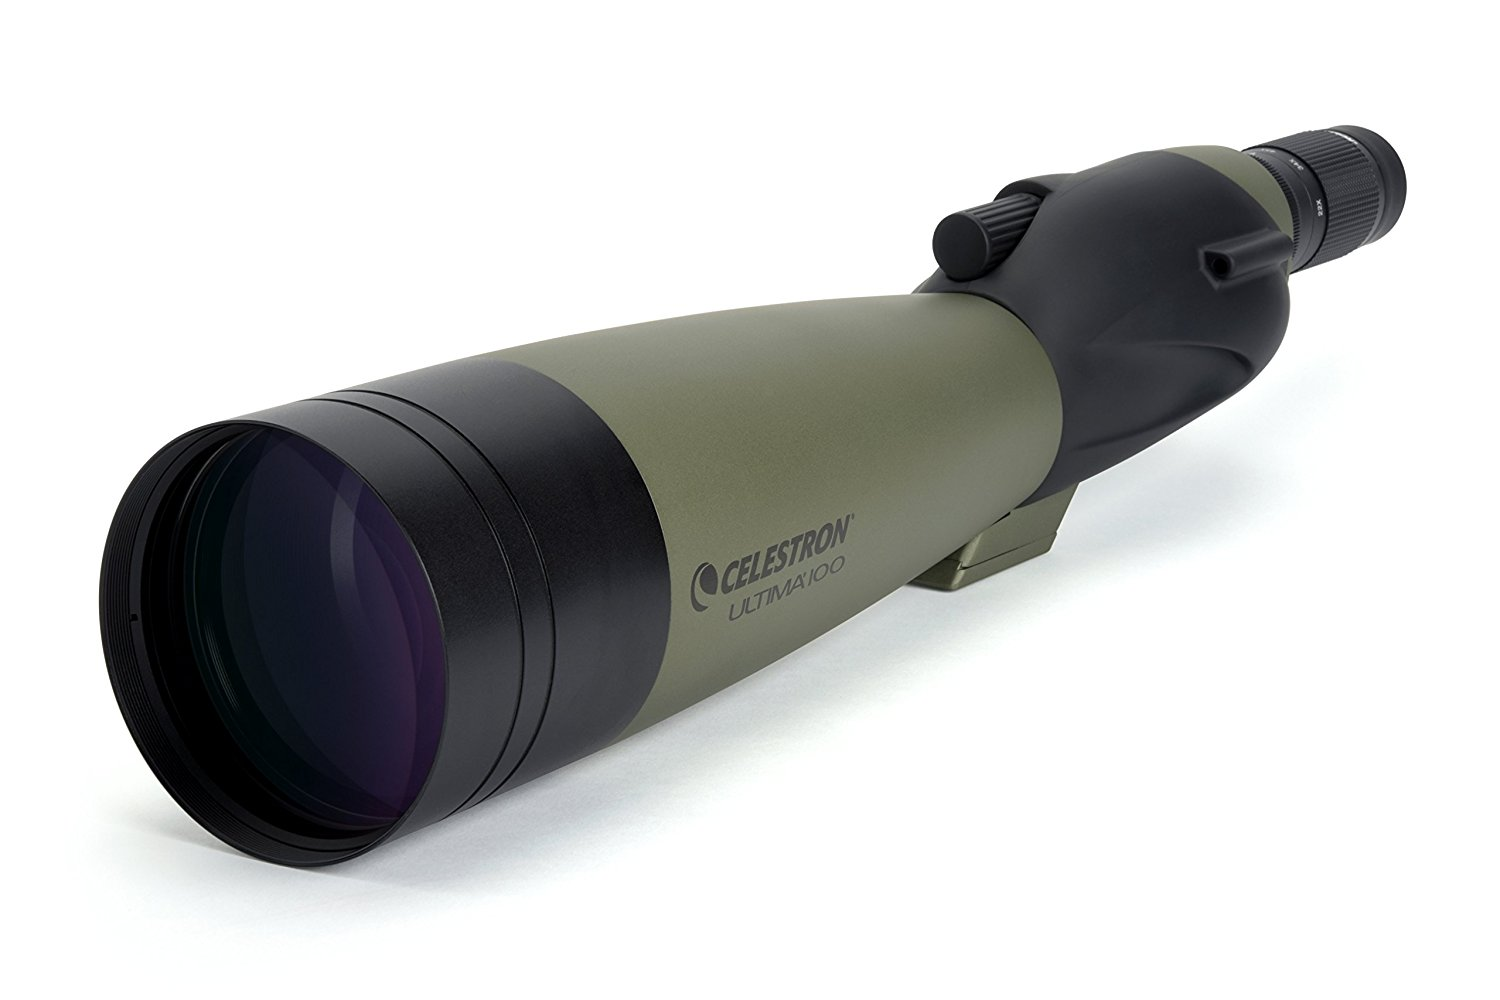 Celestron Ultima Spotting Scope